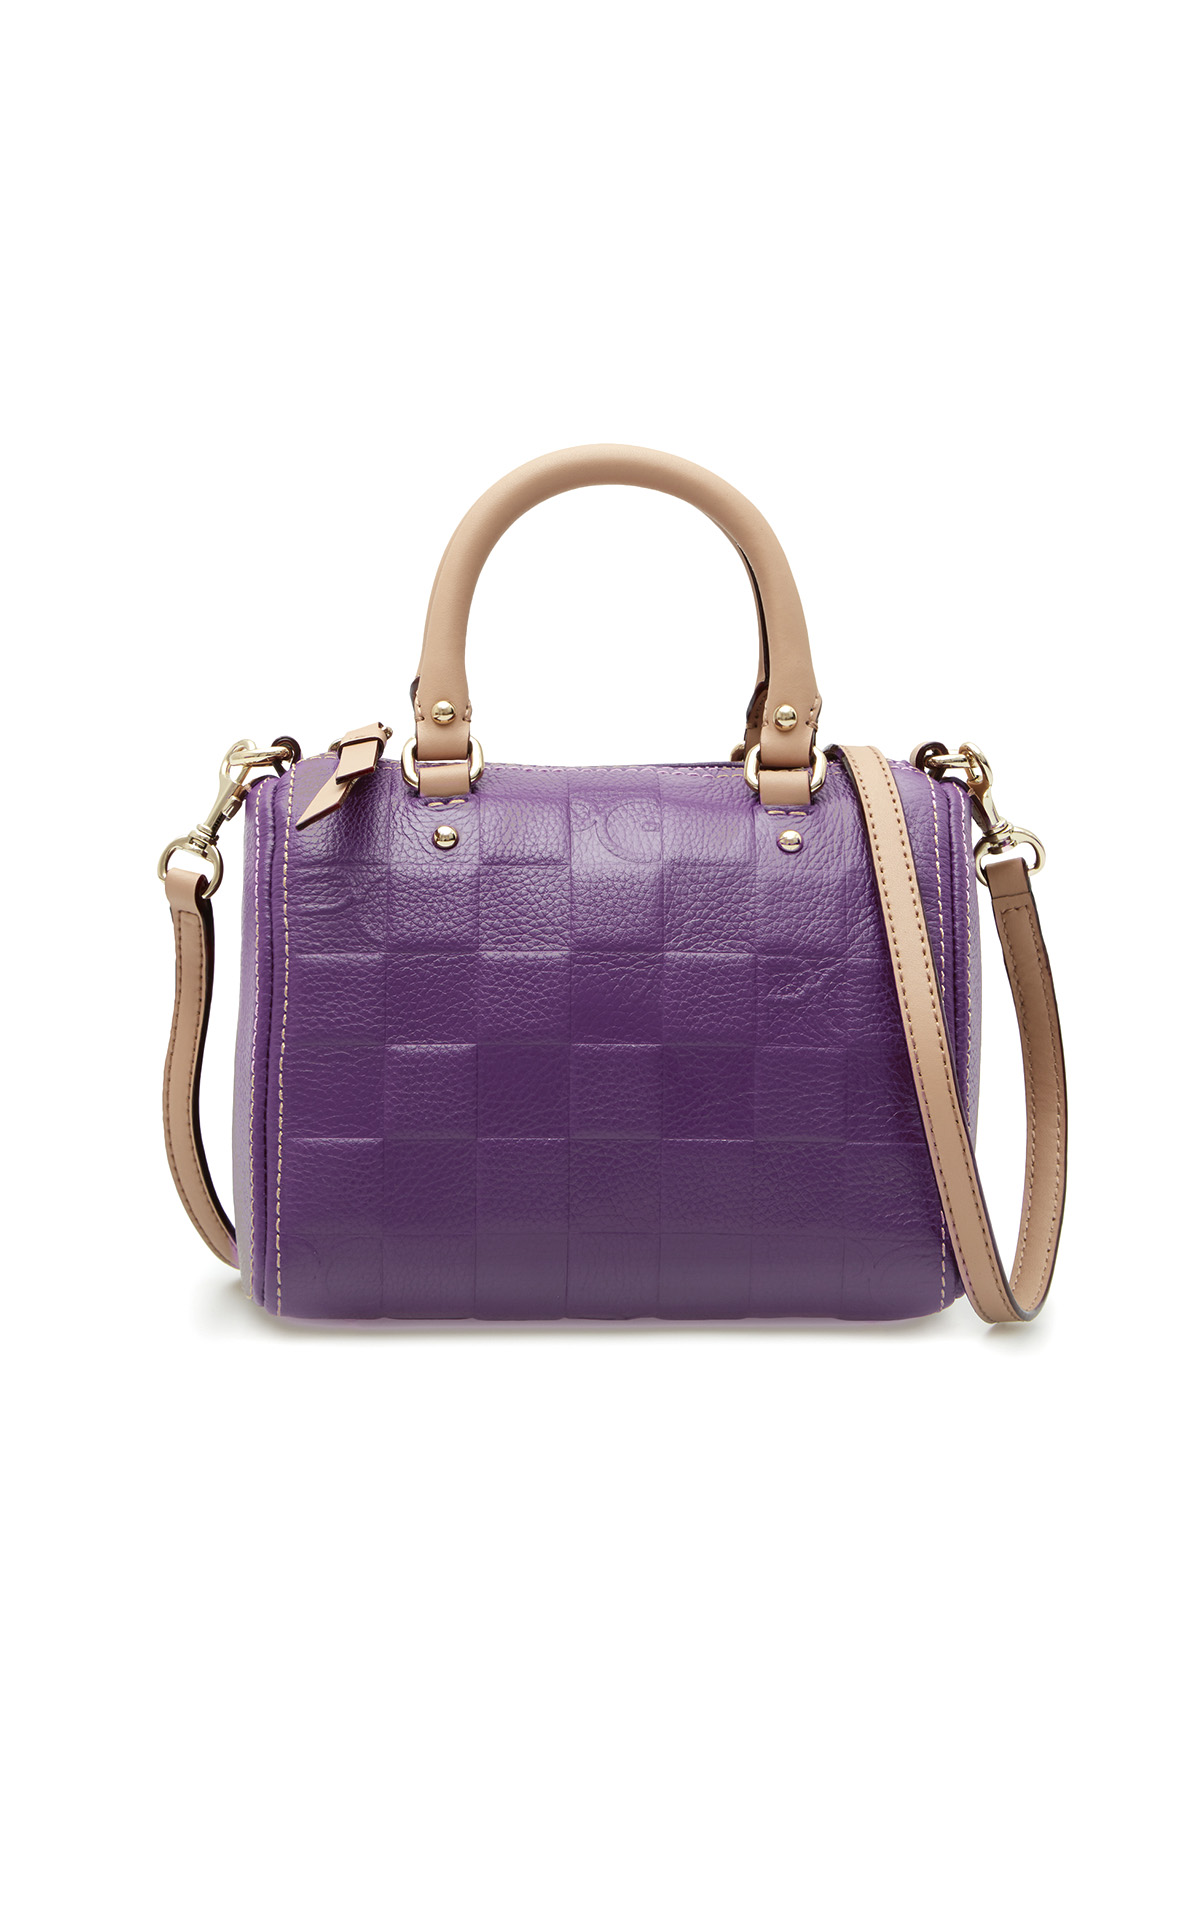 Purple leather bag Purificacion Garcia